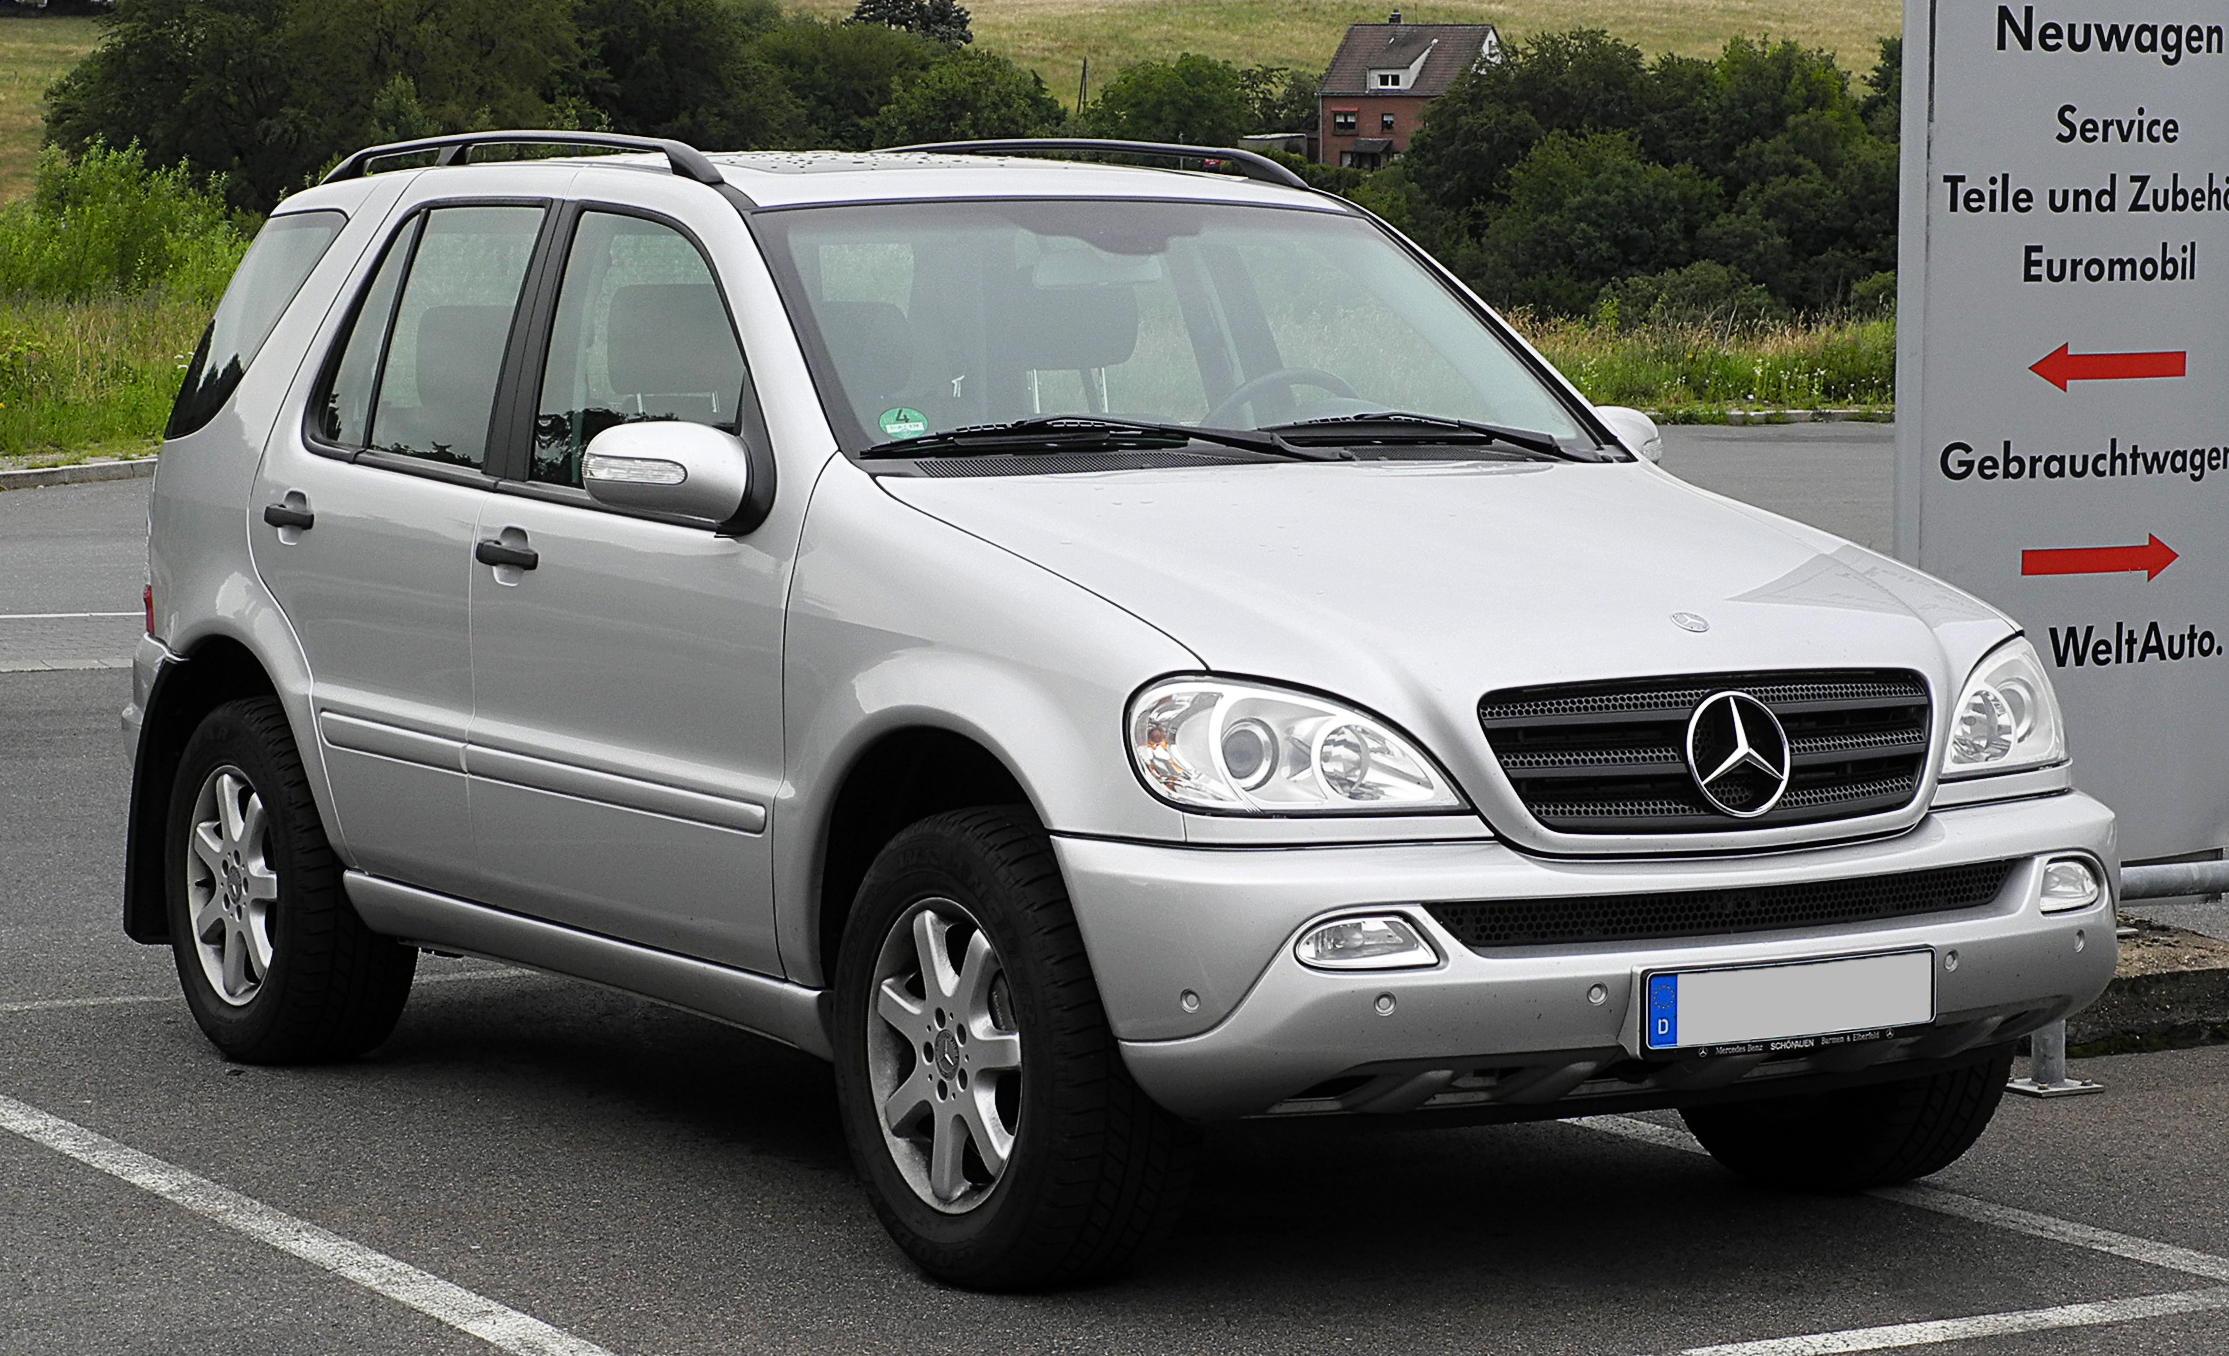 228281 besides 291946186796 further Why Mercedes Benz Replaces E550 And Ml550 With E400 And Ml400 in addition 184873 Ml 500 20 Amg Rims furthermore 261779510286. on ml550 amg